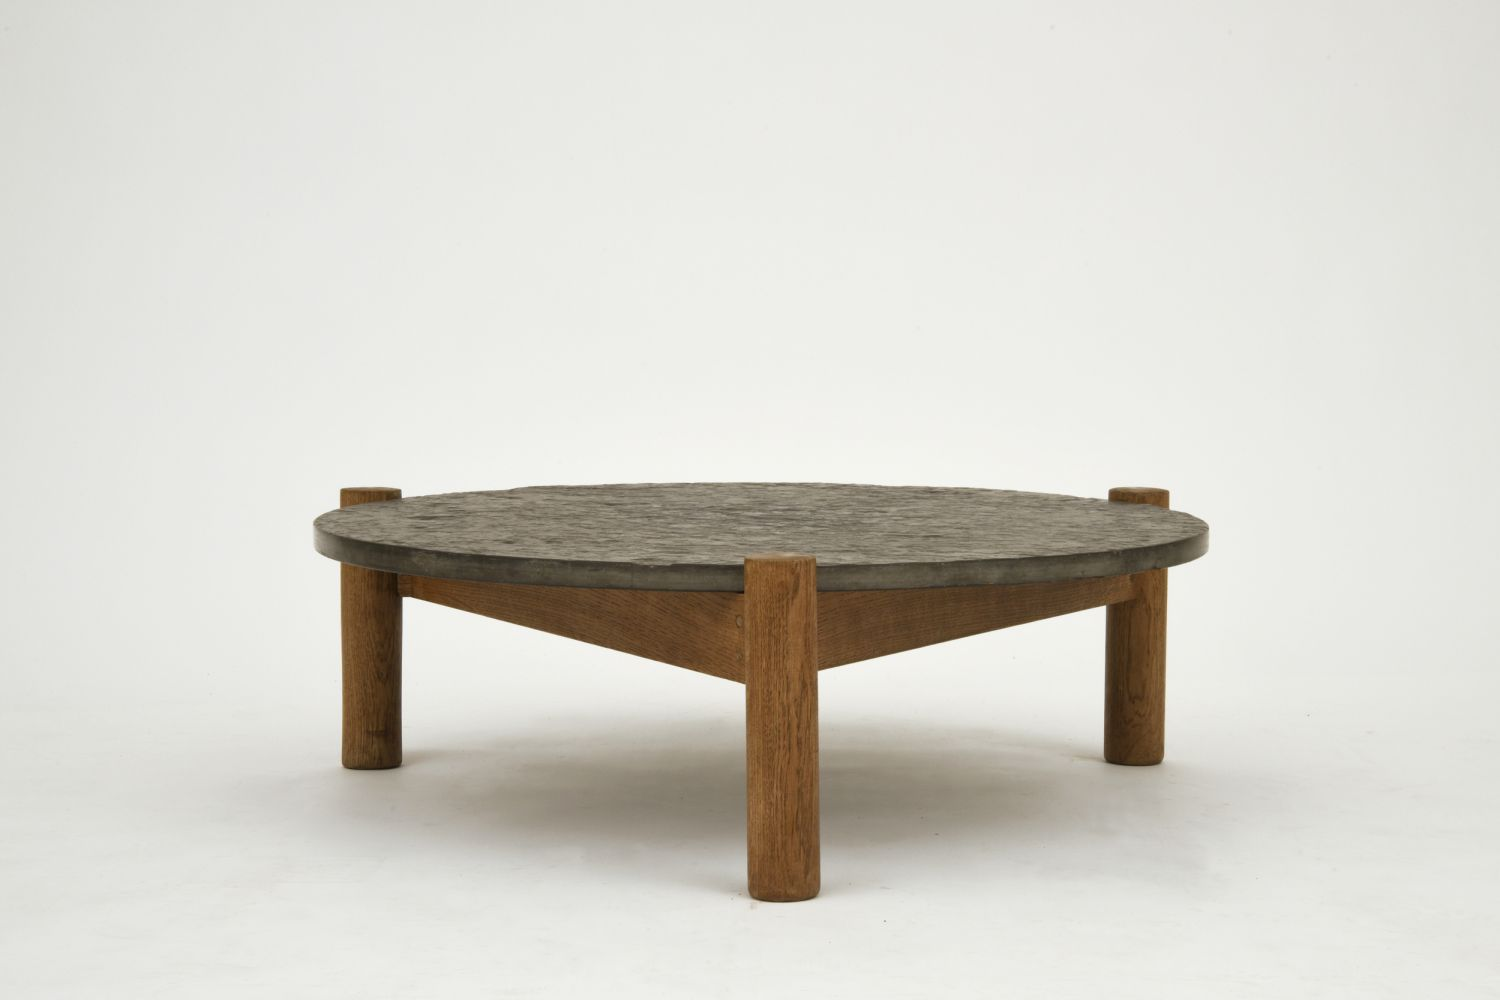 Charlotte Perriand - Coffee table, c. 1950